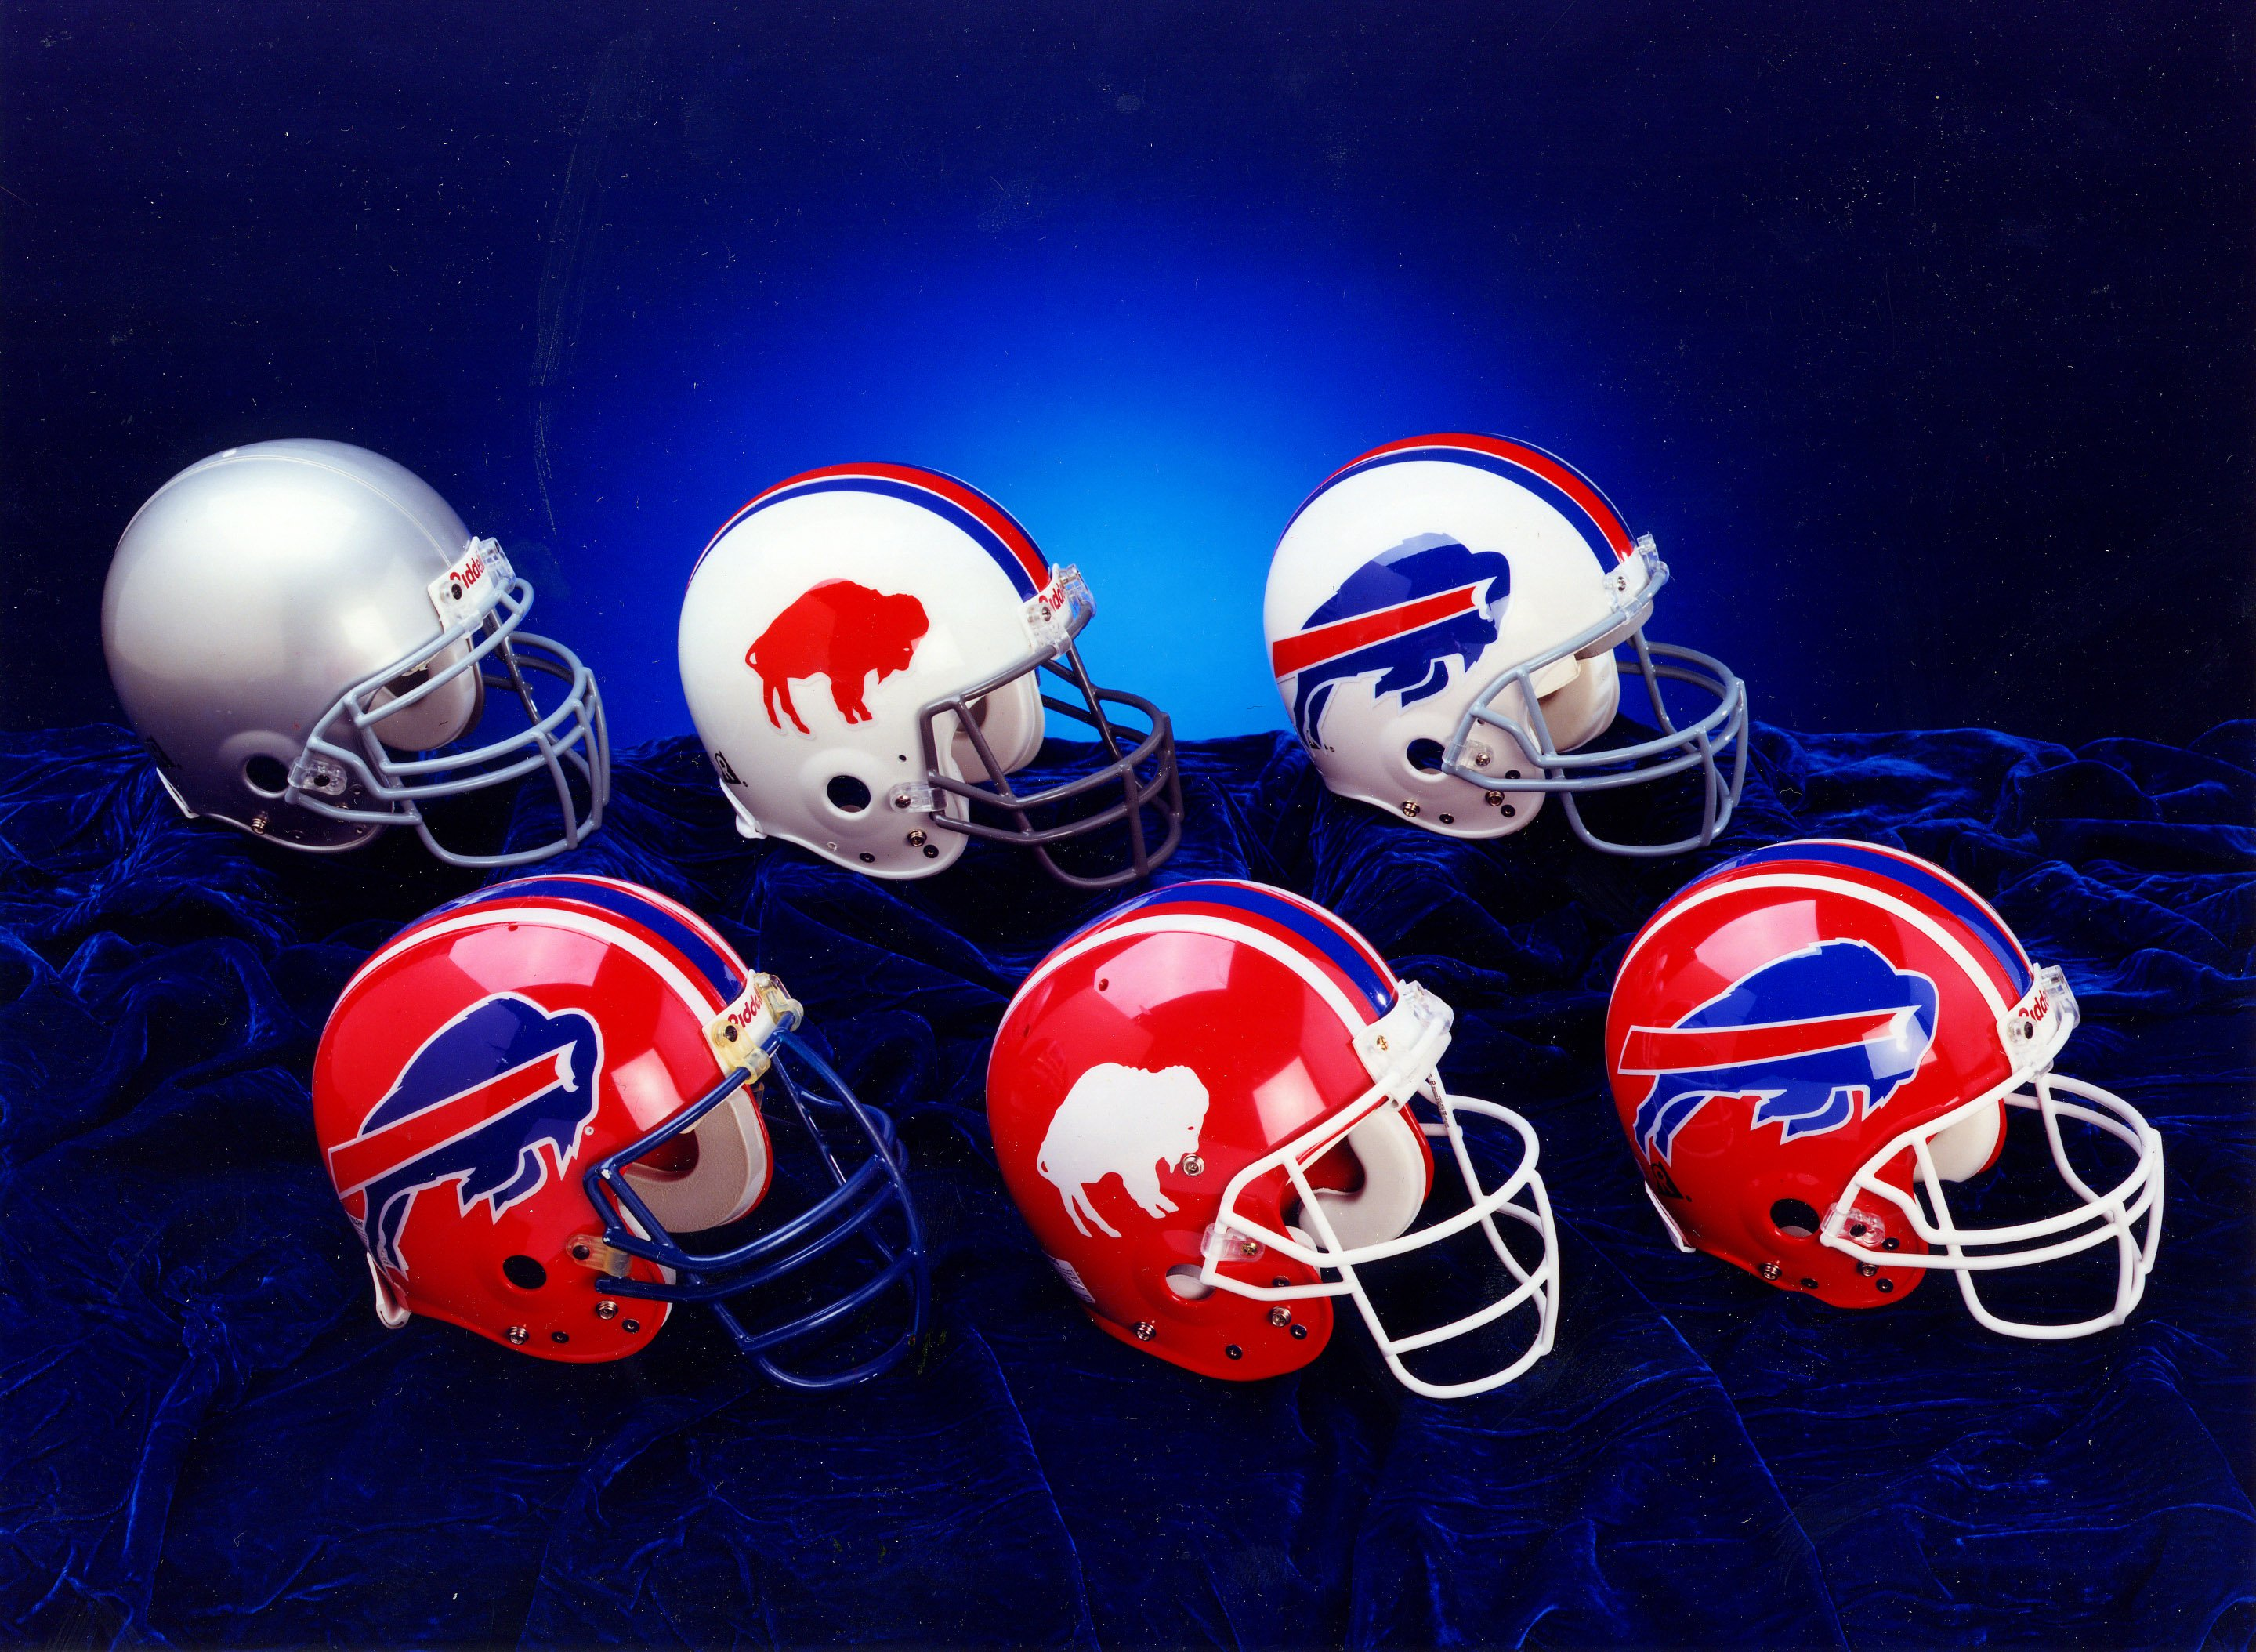 buffalo bills helmet by skyhdwallpapercom 2879x2108